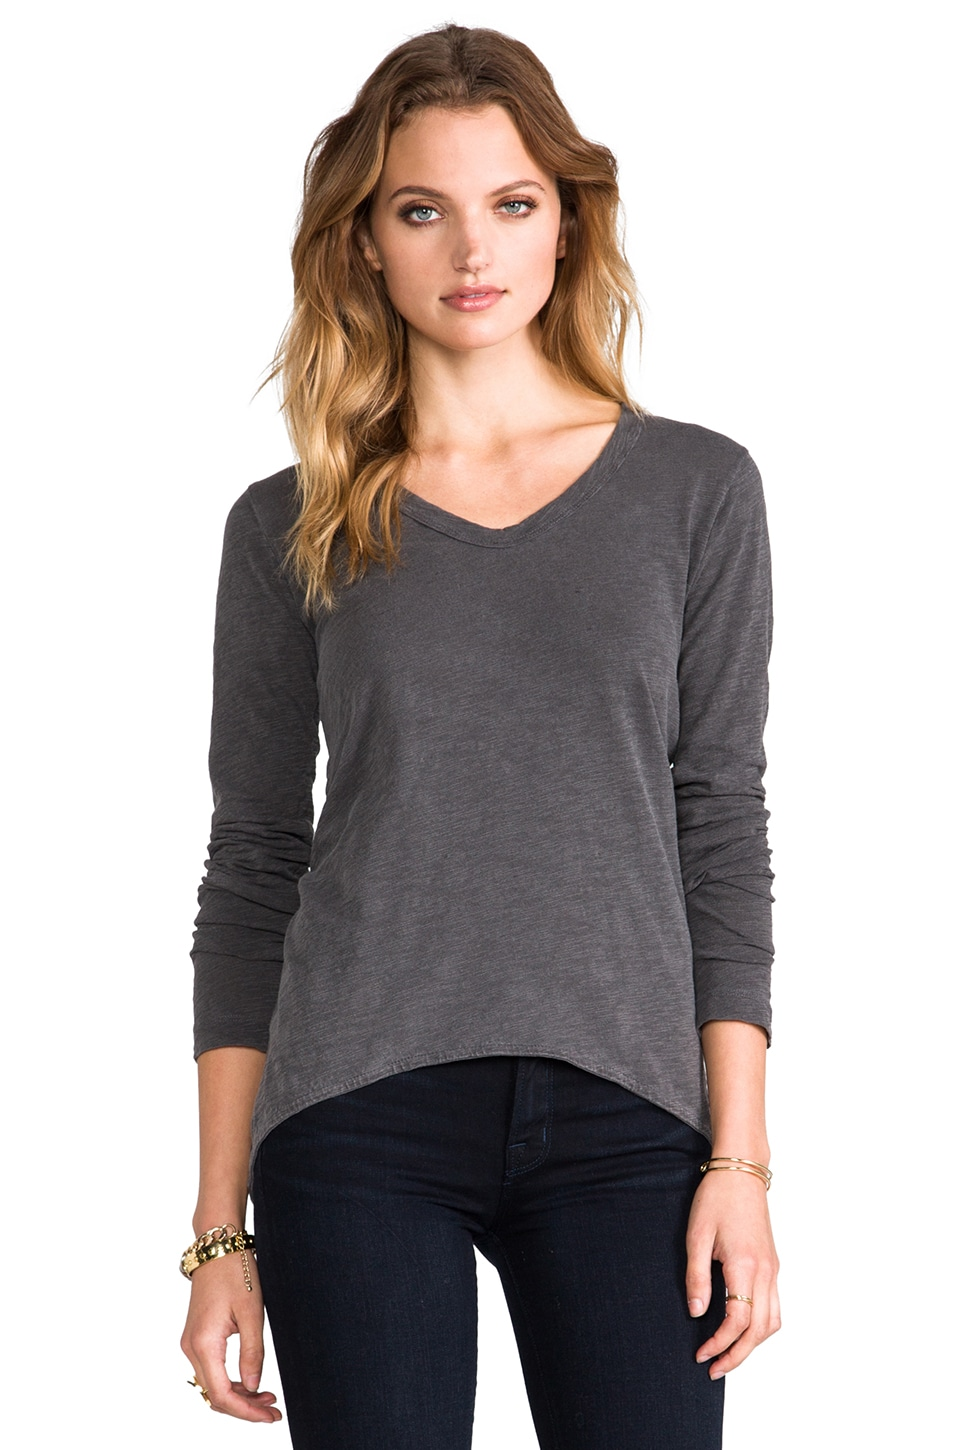 Wilt Slub Long Sleeve Shrunken BF Tee in Ash